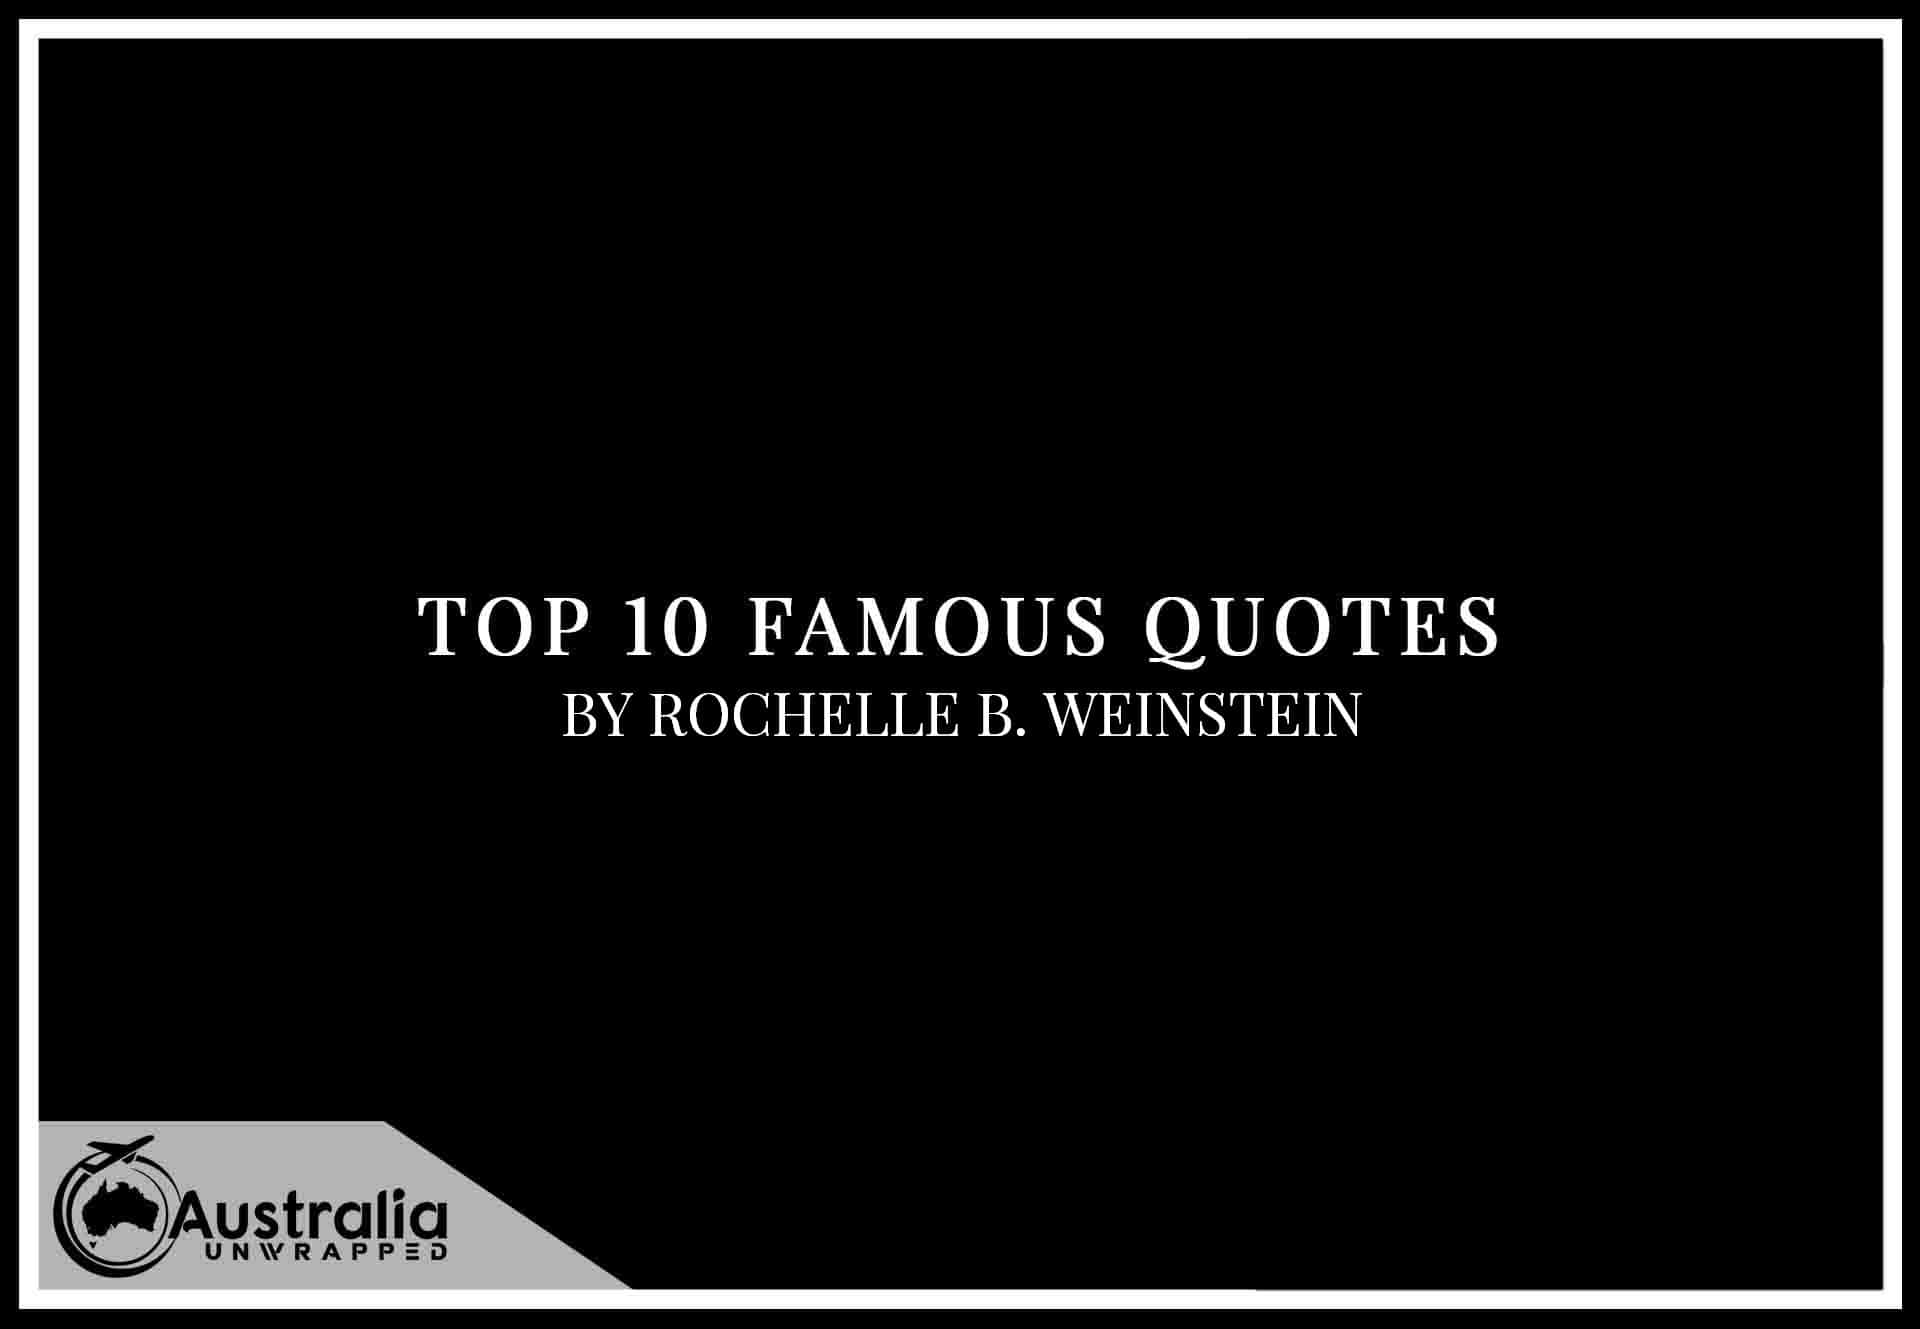 Top 10 Famous Quotes by Author Rochelle B. Weinstein